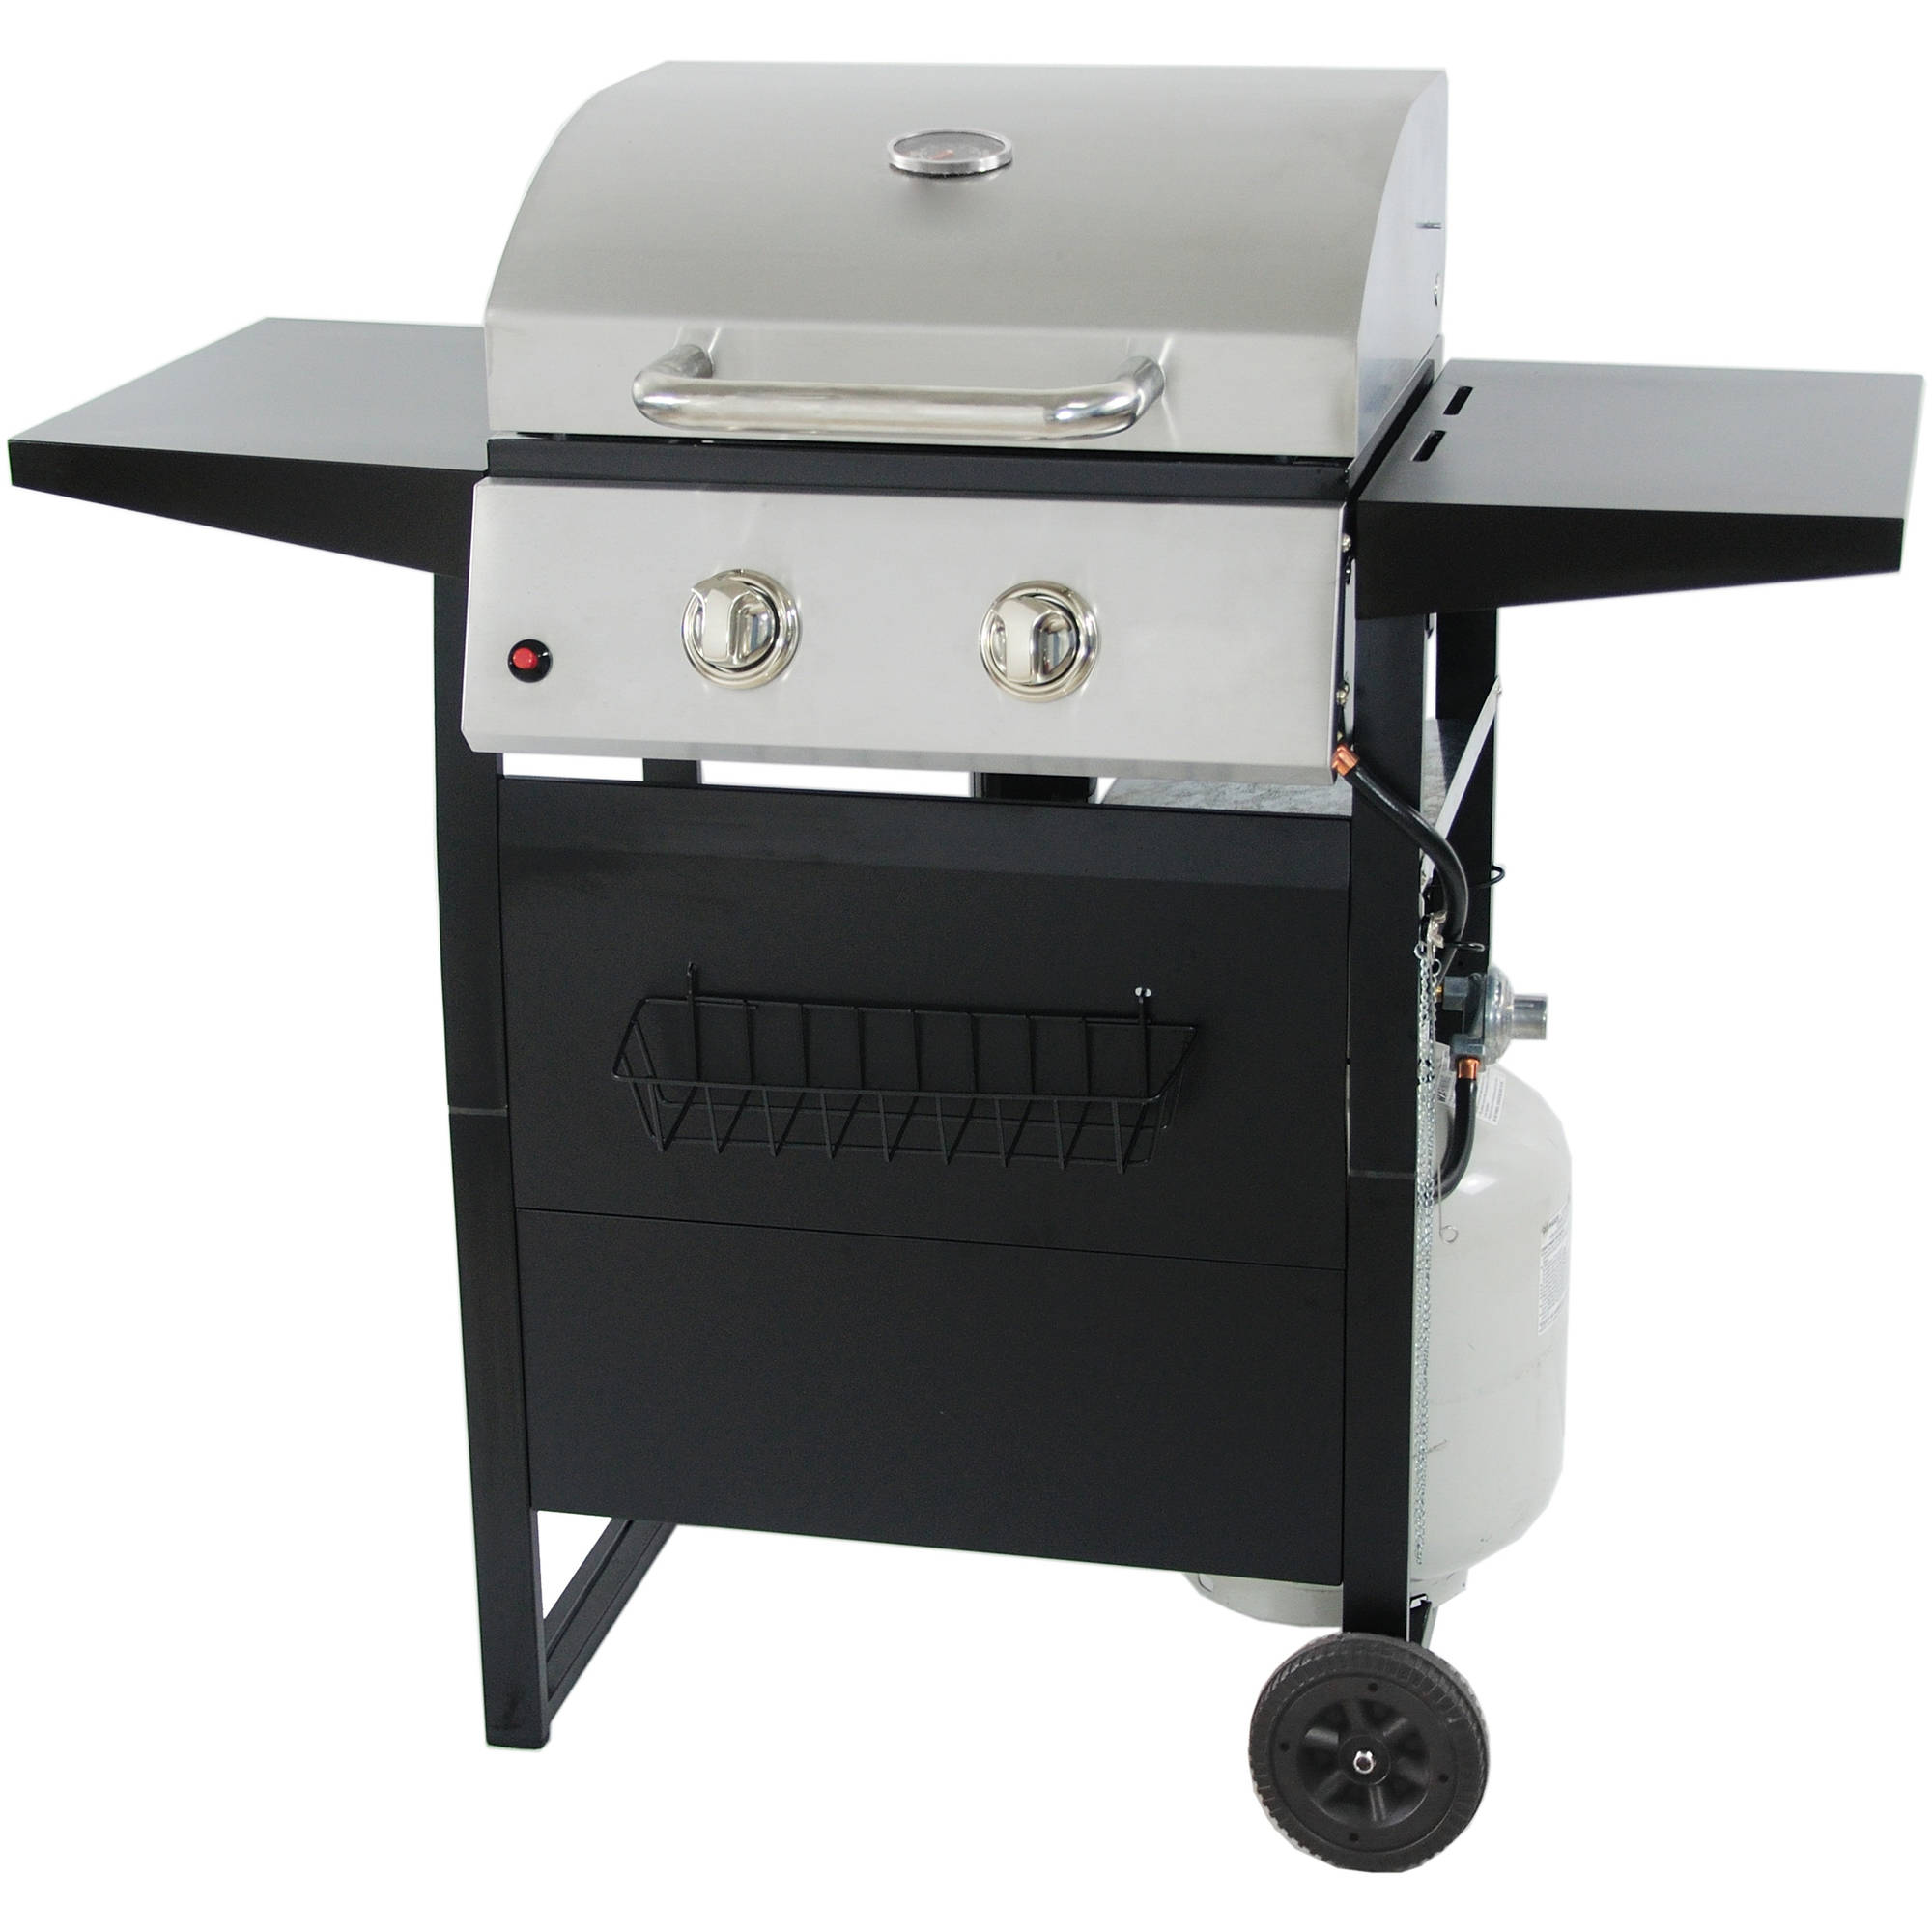 RevoAce 2-Burner LP Gas Grill with Stainless Steel by